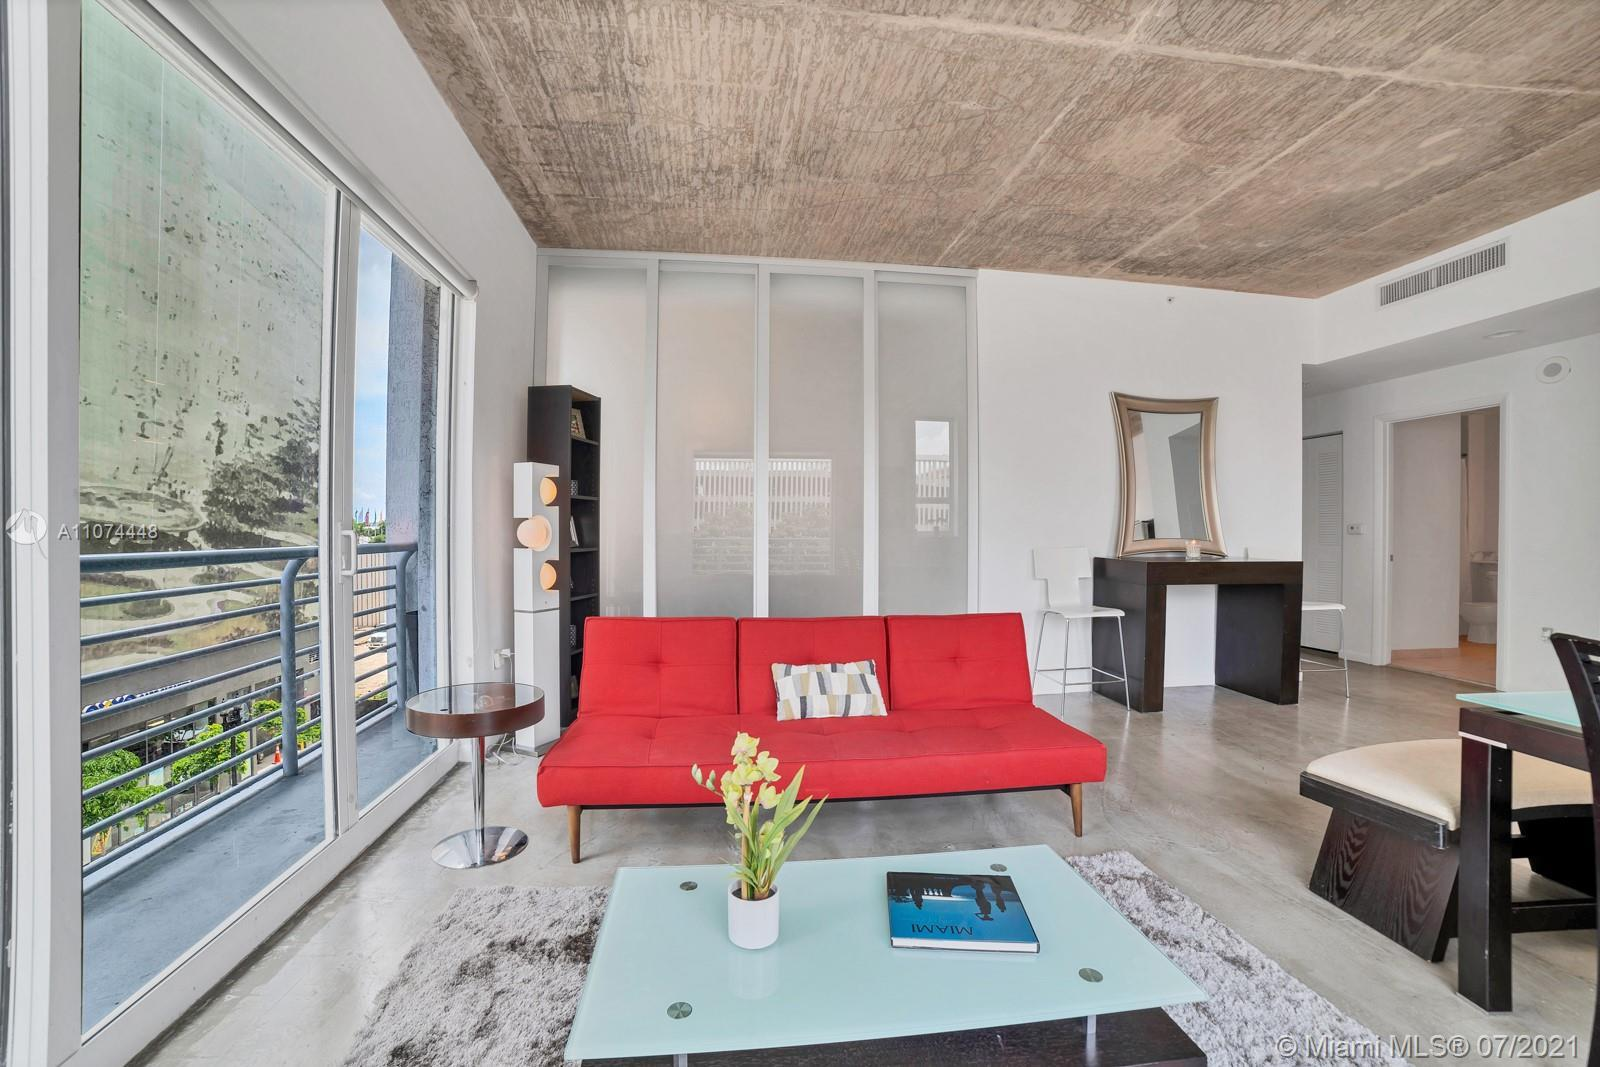 TURN KEY! FANTASTIC 2bed/2bath BOUTIQUE LOFT condo for SALE! GREAT LOCATION in the heart of Downtown